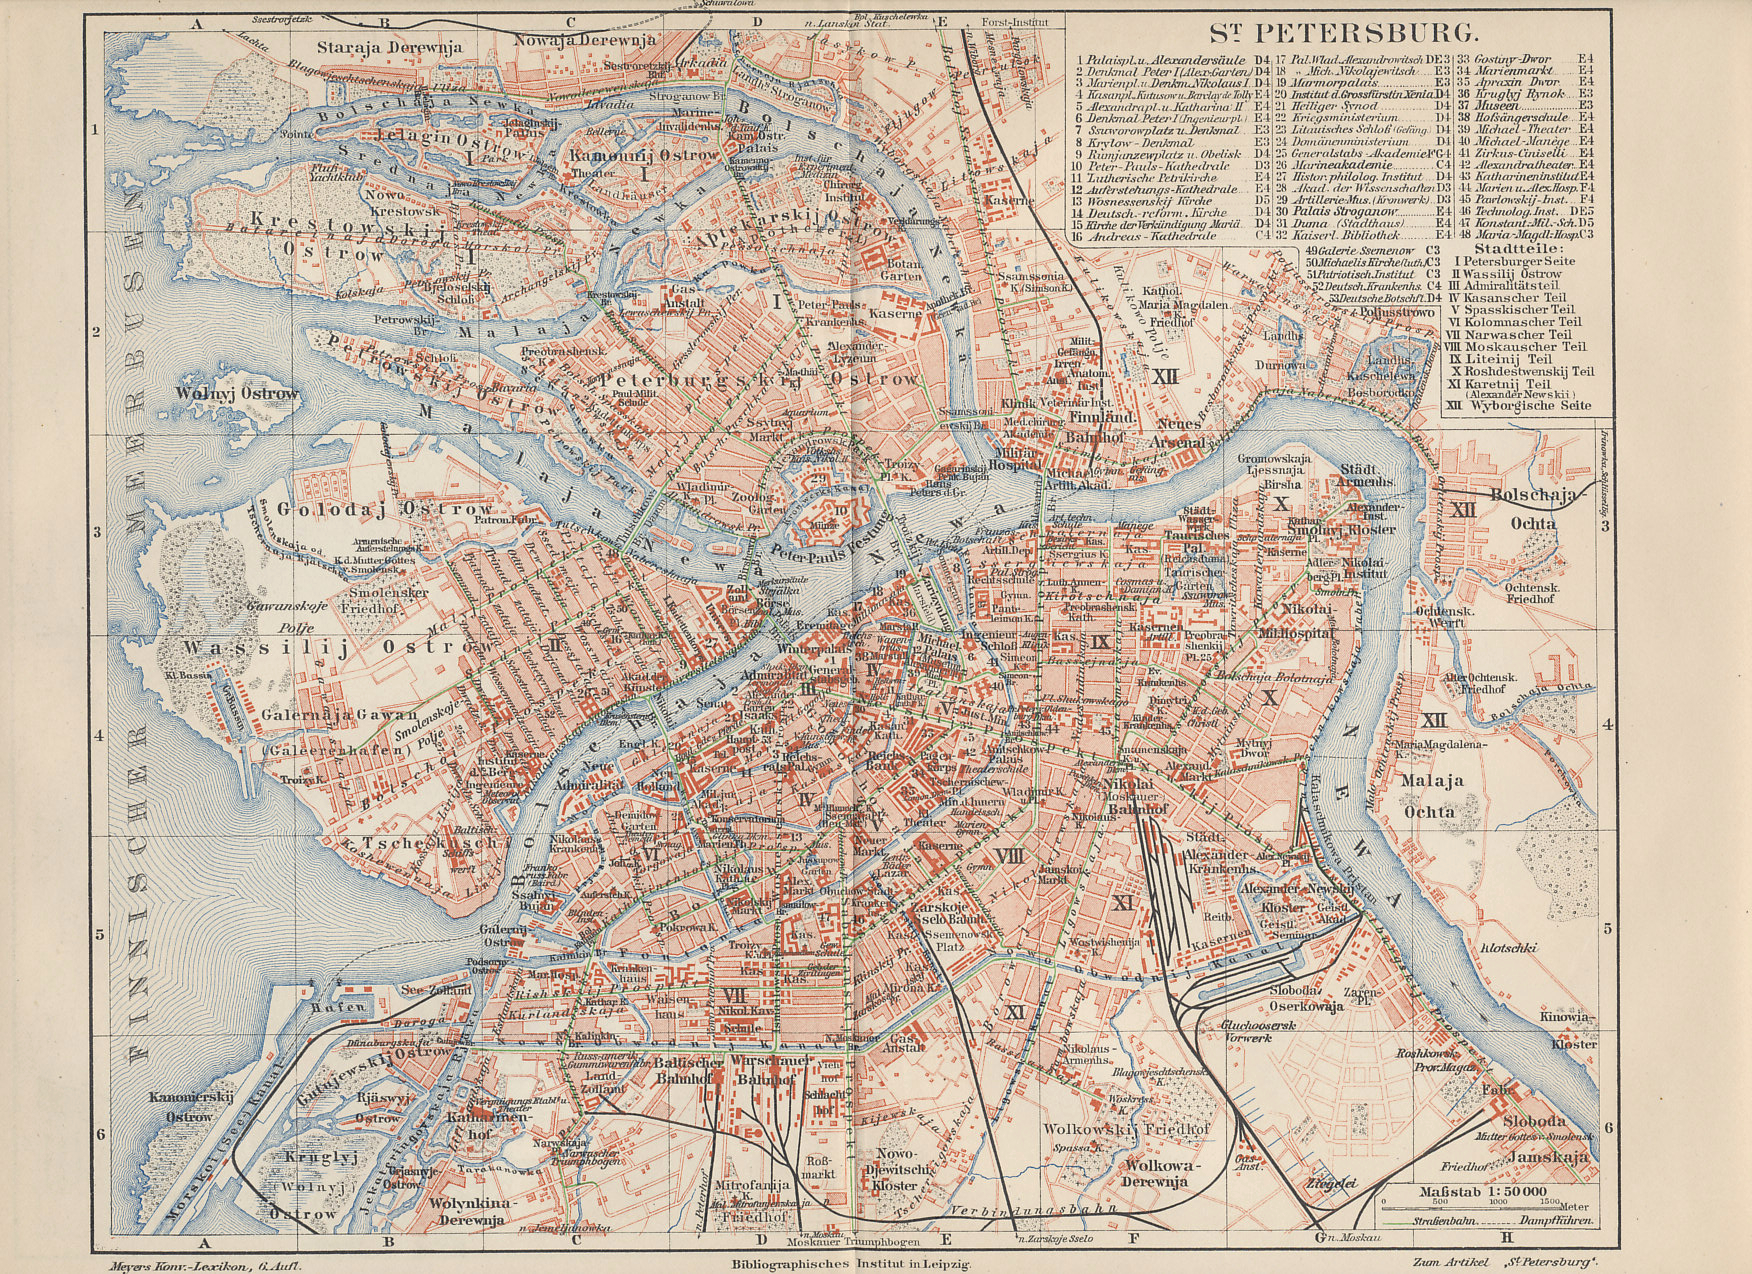 1898 map of St. Petersburg, the Russian capital, from a German atlas. Central St Petersburg, or Petrograd, is on the Neva River. Key landmarks include the Peter and Paul Fortress, which served as a prison, Nevski Prospect, a primary boulevard south of the Fortress, the Finland Train Station, east of the Fortress, where Lenin made his triumphal return, the Tauride (Taurisches) Palace, which housed the Duma and later the Petrograd Soviet.